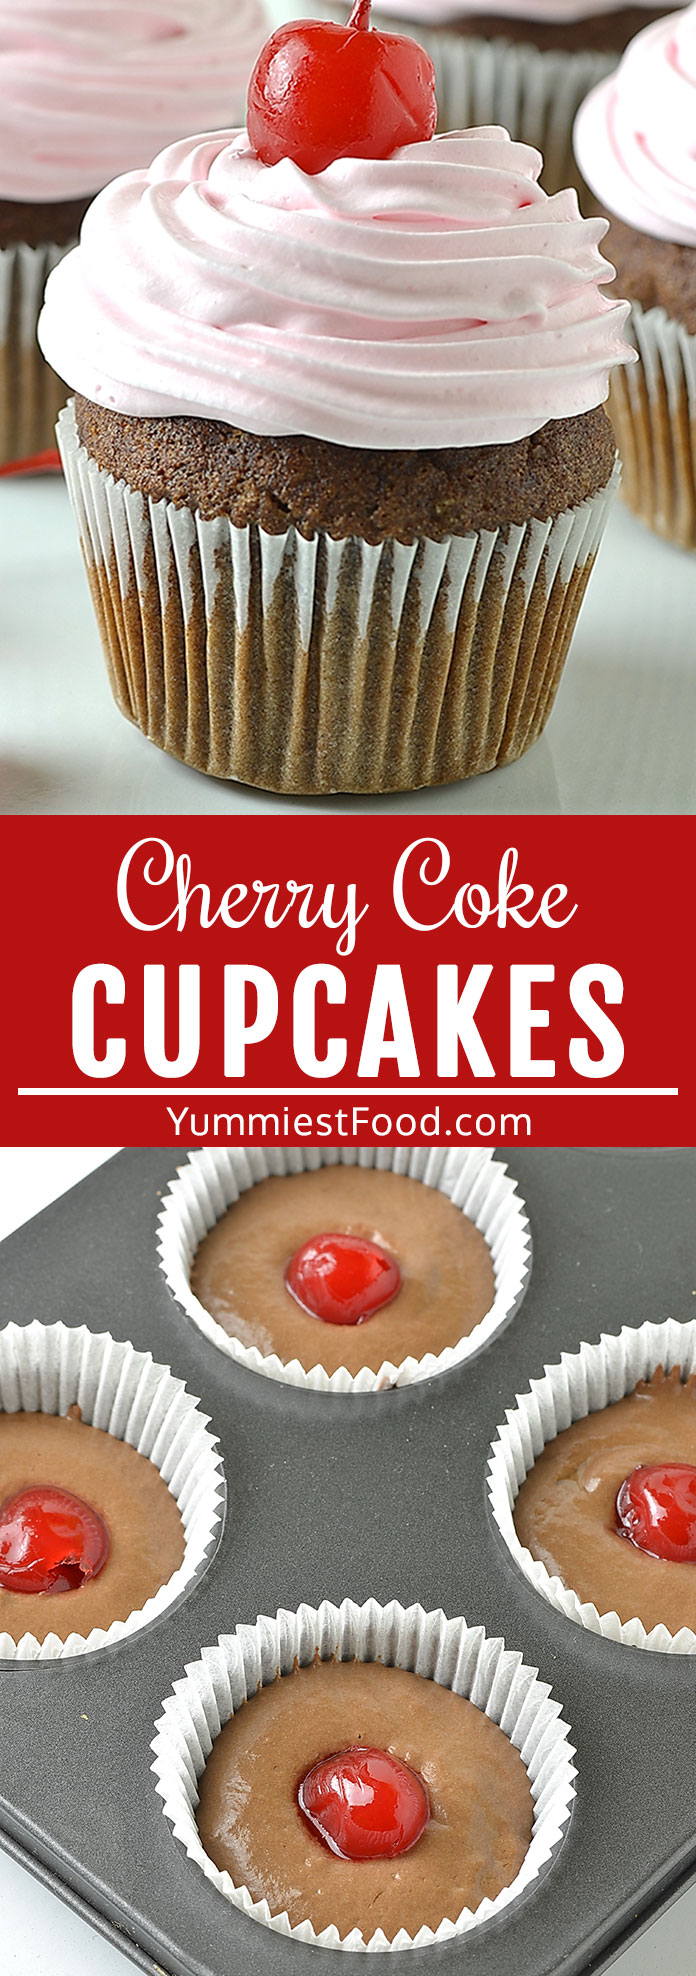 Cherry Coke Cupcakes are a cupcake with all the tasty flavors of cherry coke in a cupcake form! Cherry Coke Cupcakes are fun and delicious dessert and a big hit at any party! #desserts #dessertrecipes #easyrecipes #cupcakes